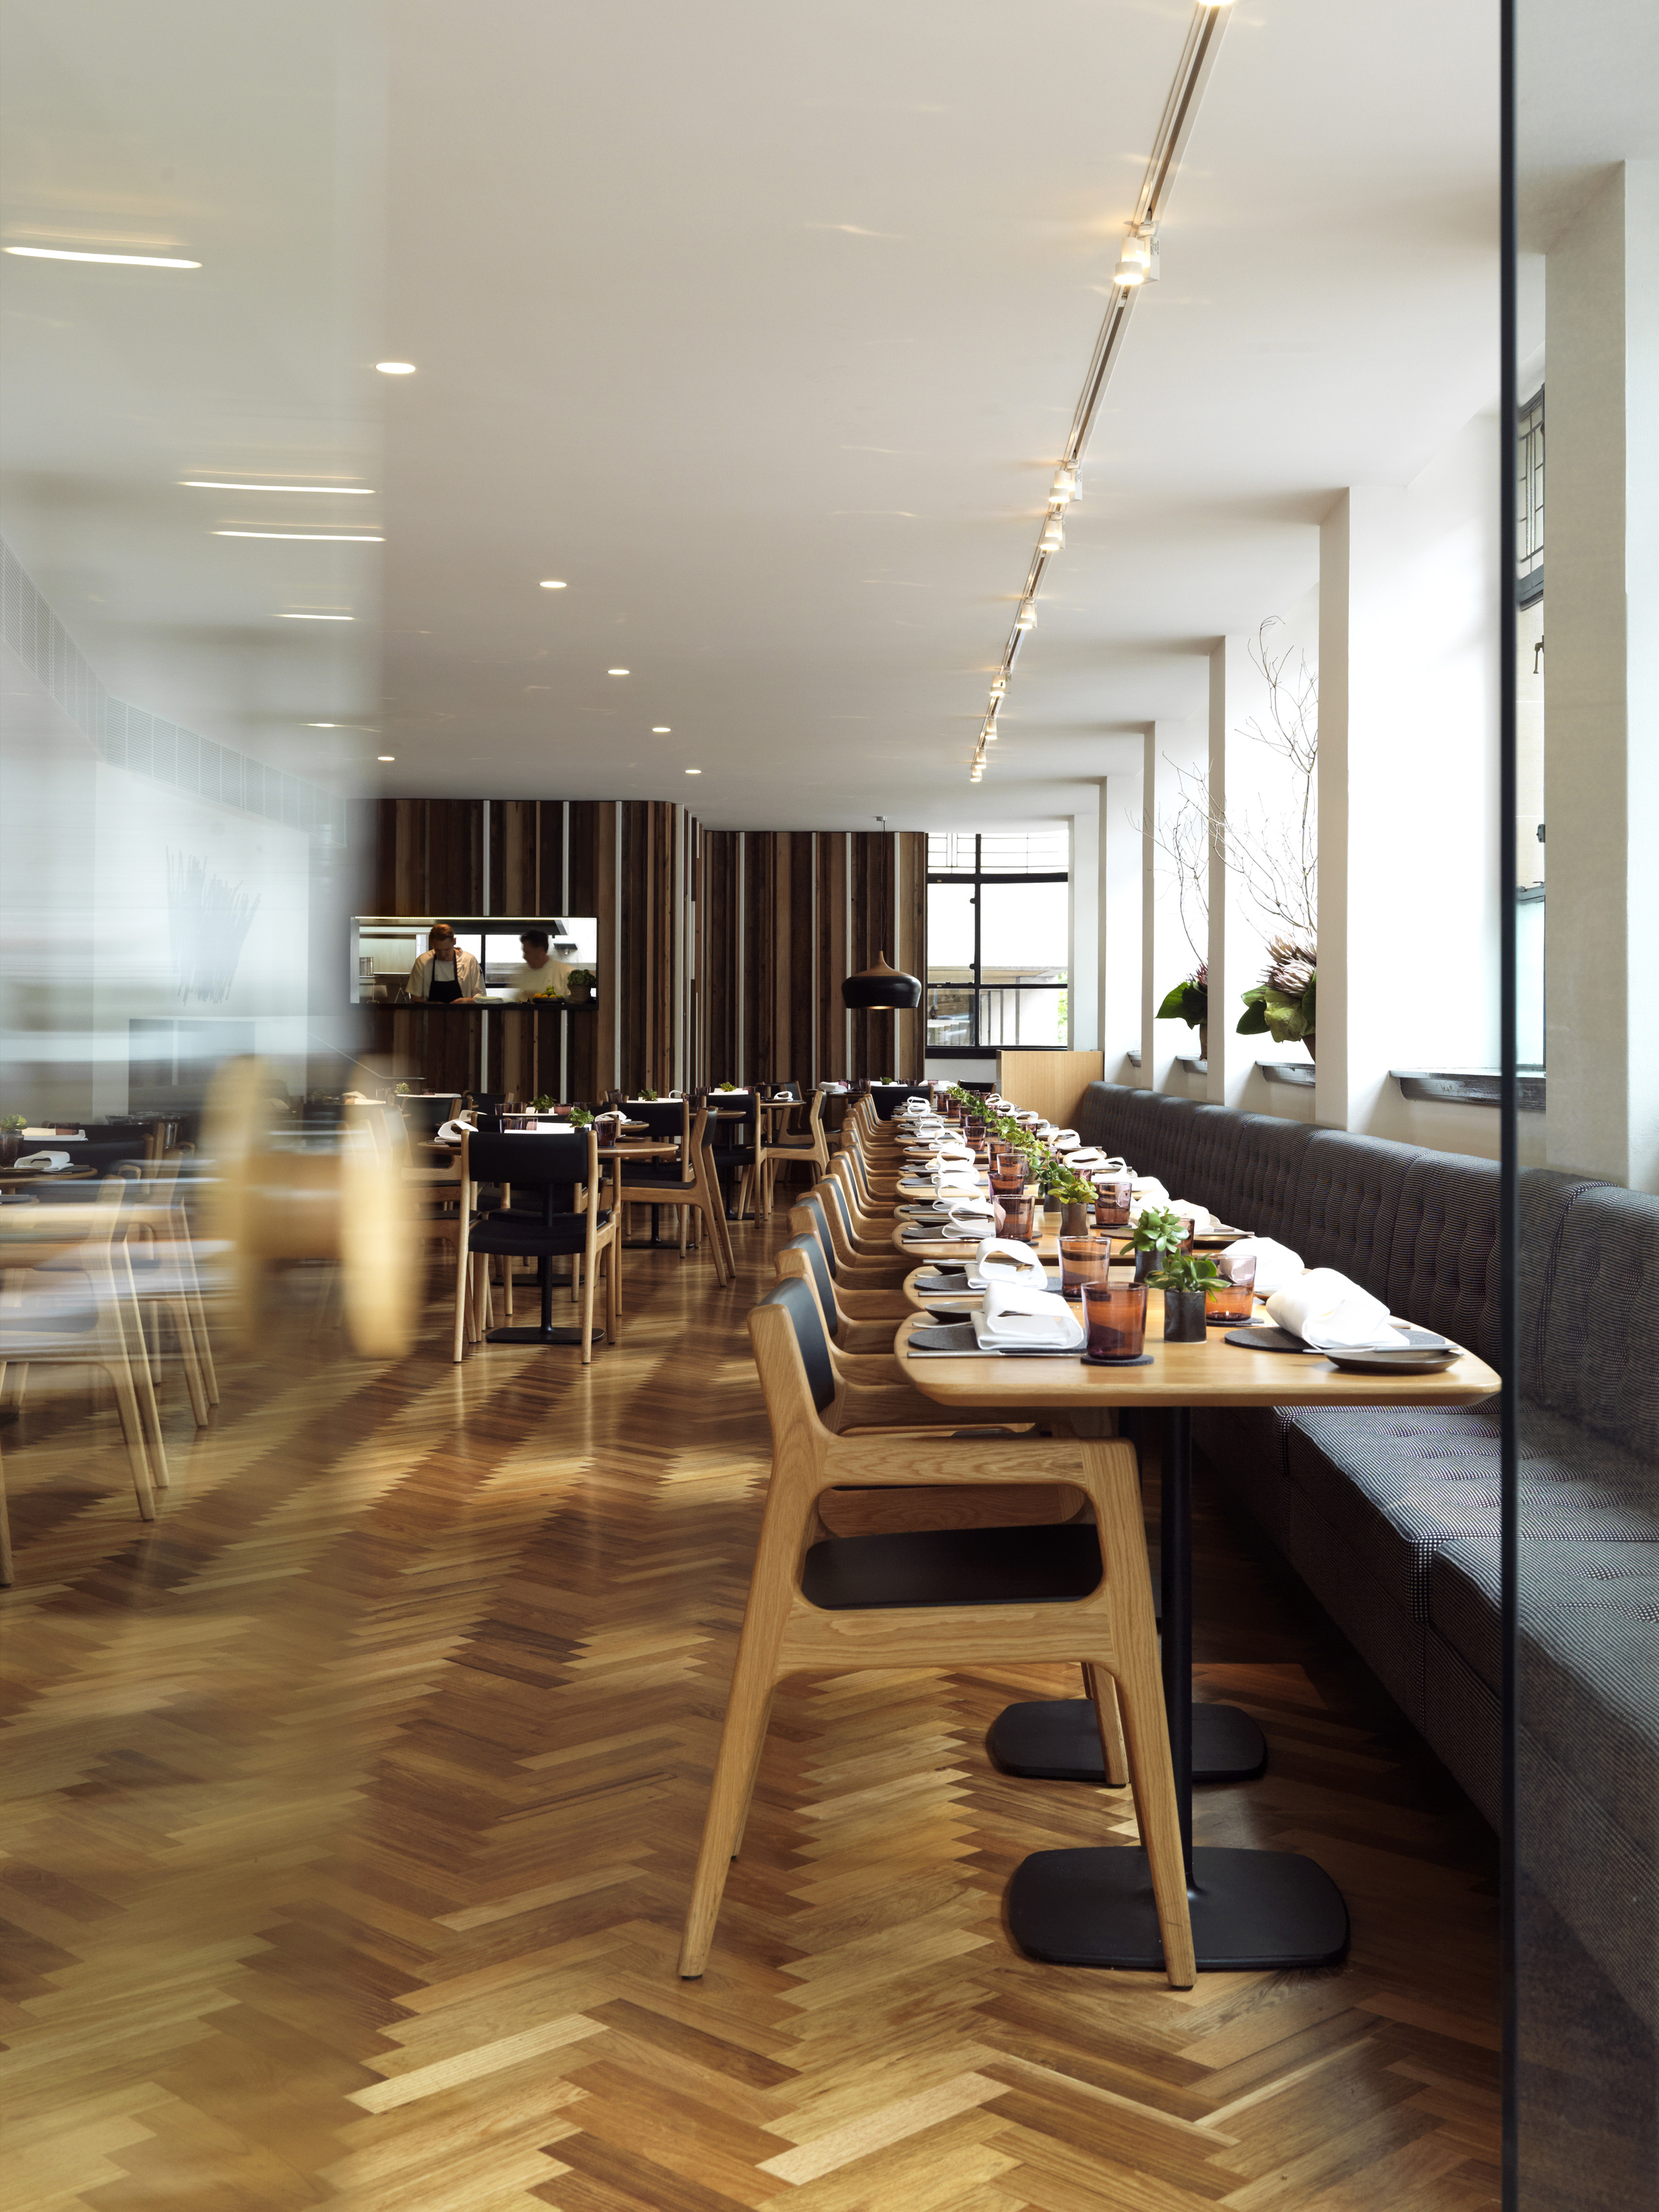 The curators laurent perrier chef brendan cato uncover for The dining room sydney